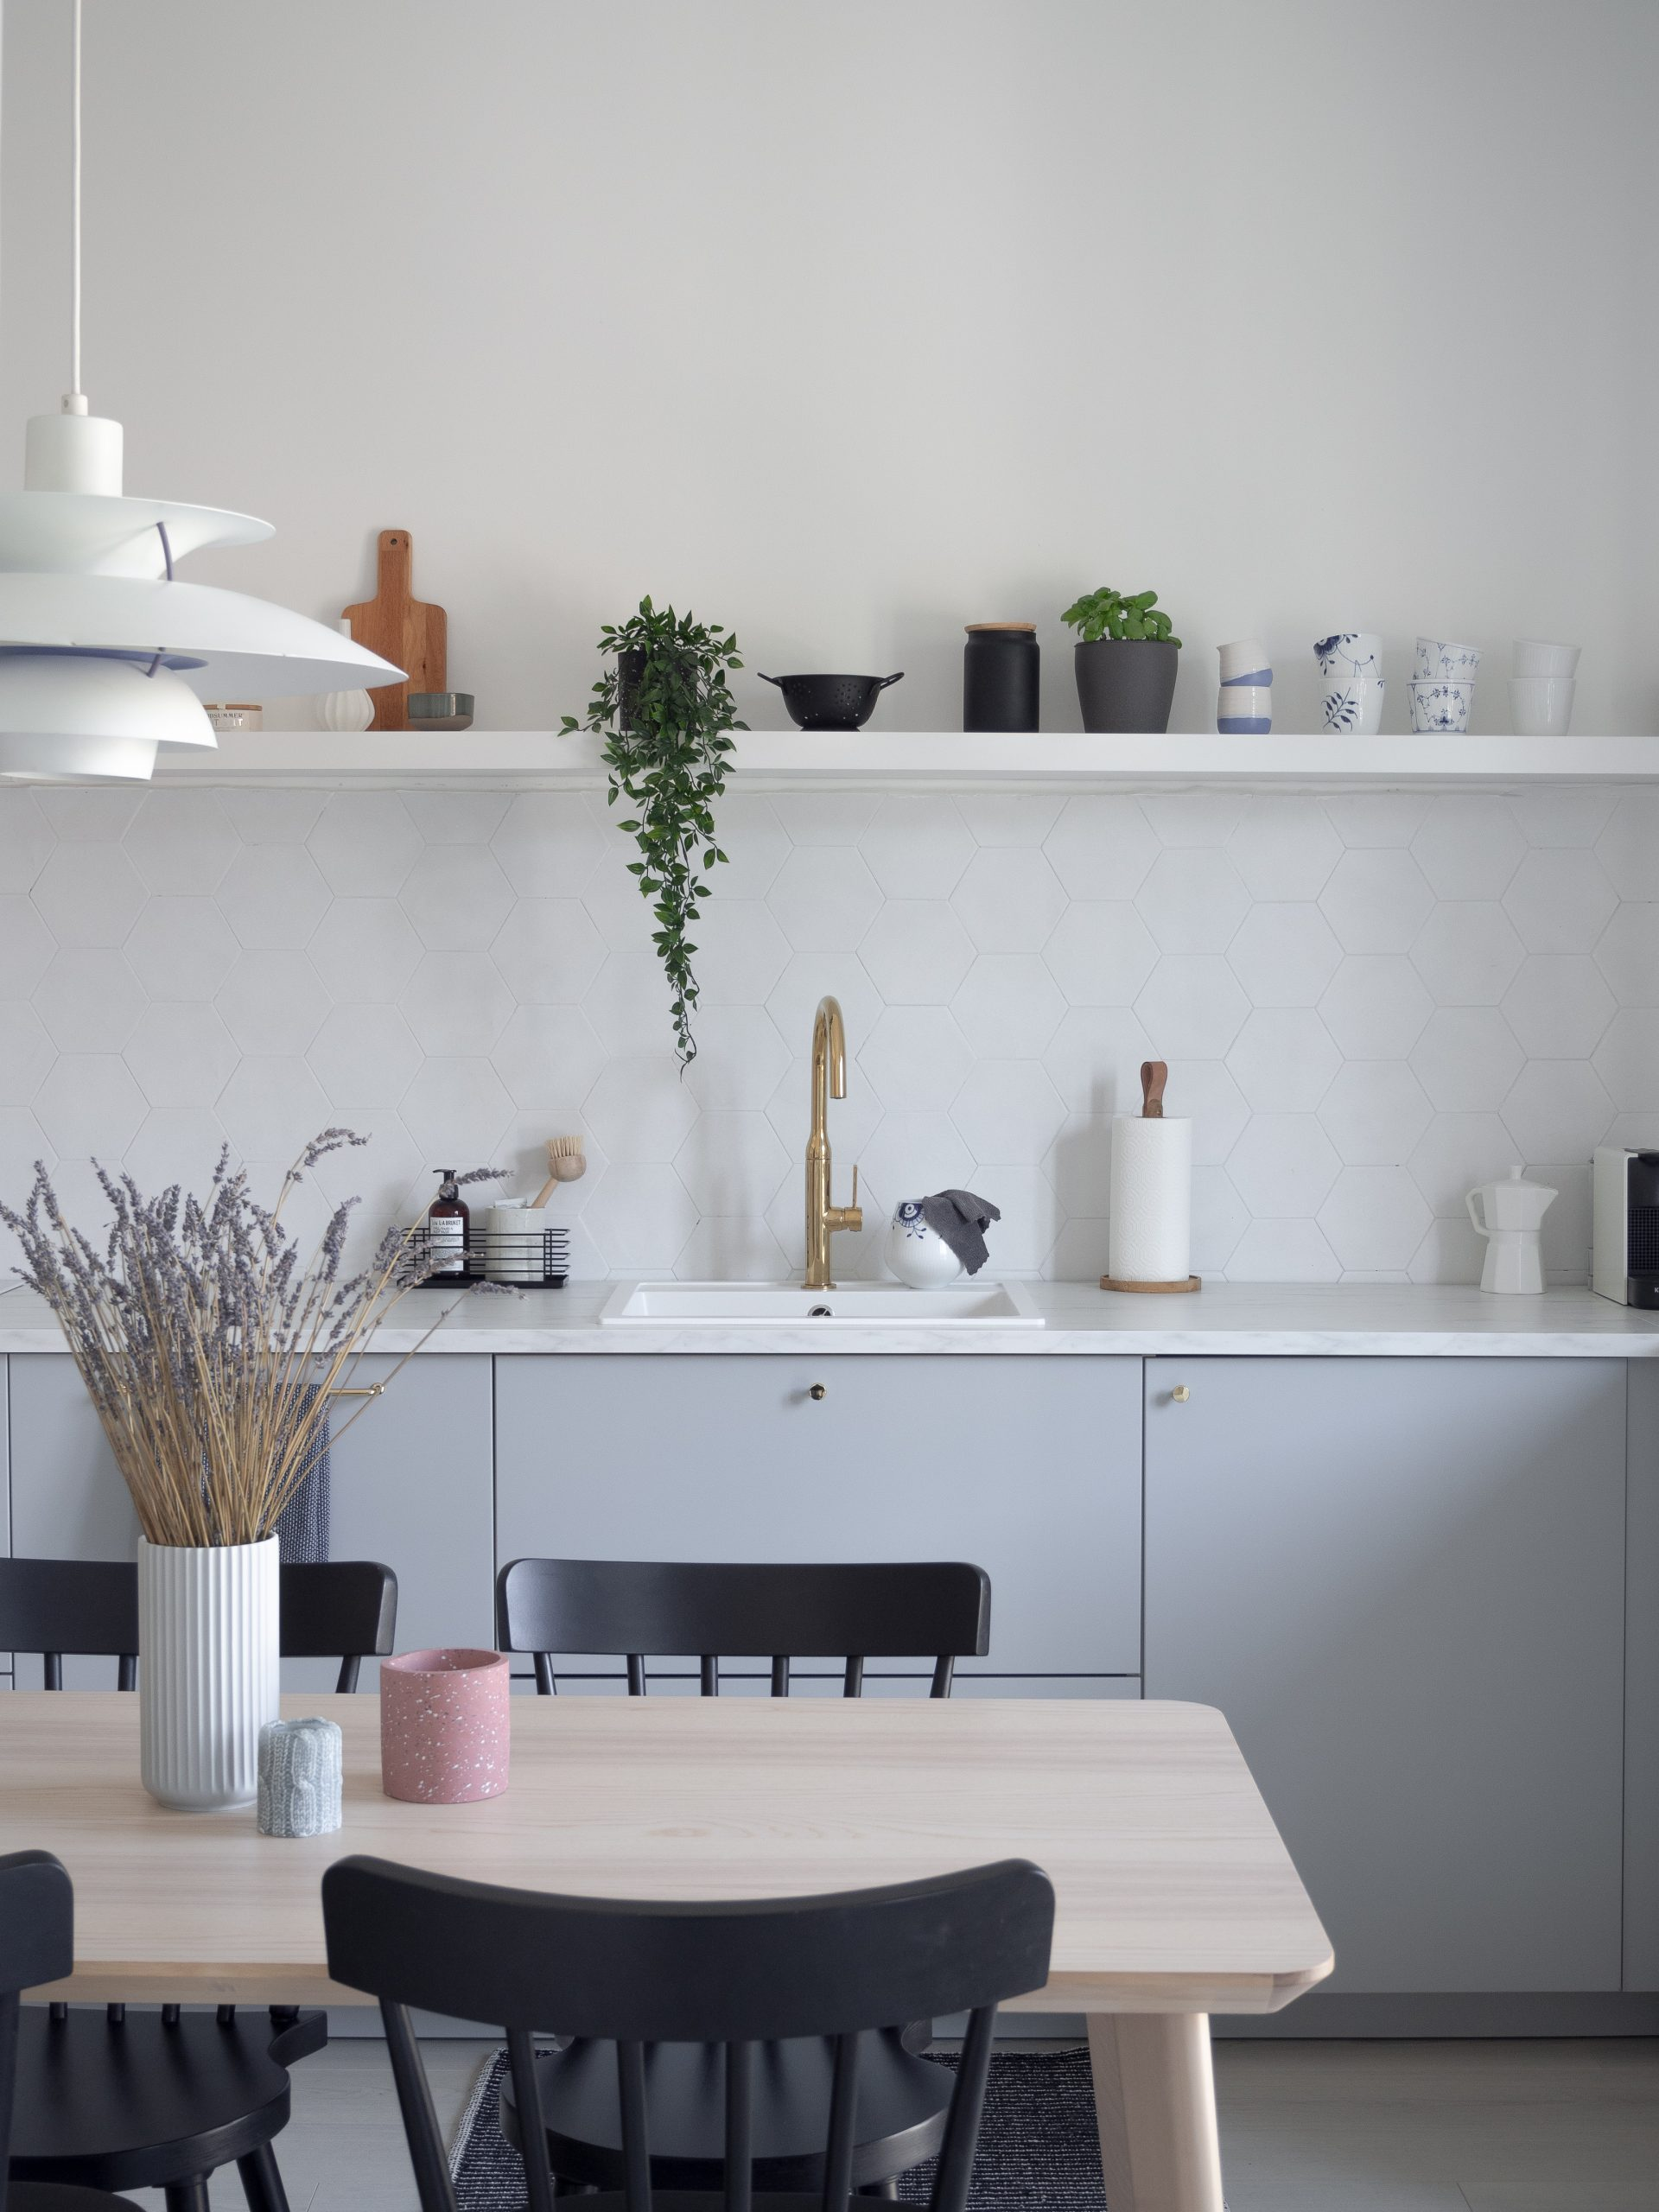 Scandinavian vibes in the kitchen of Ingrid Opstad